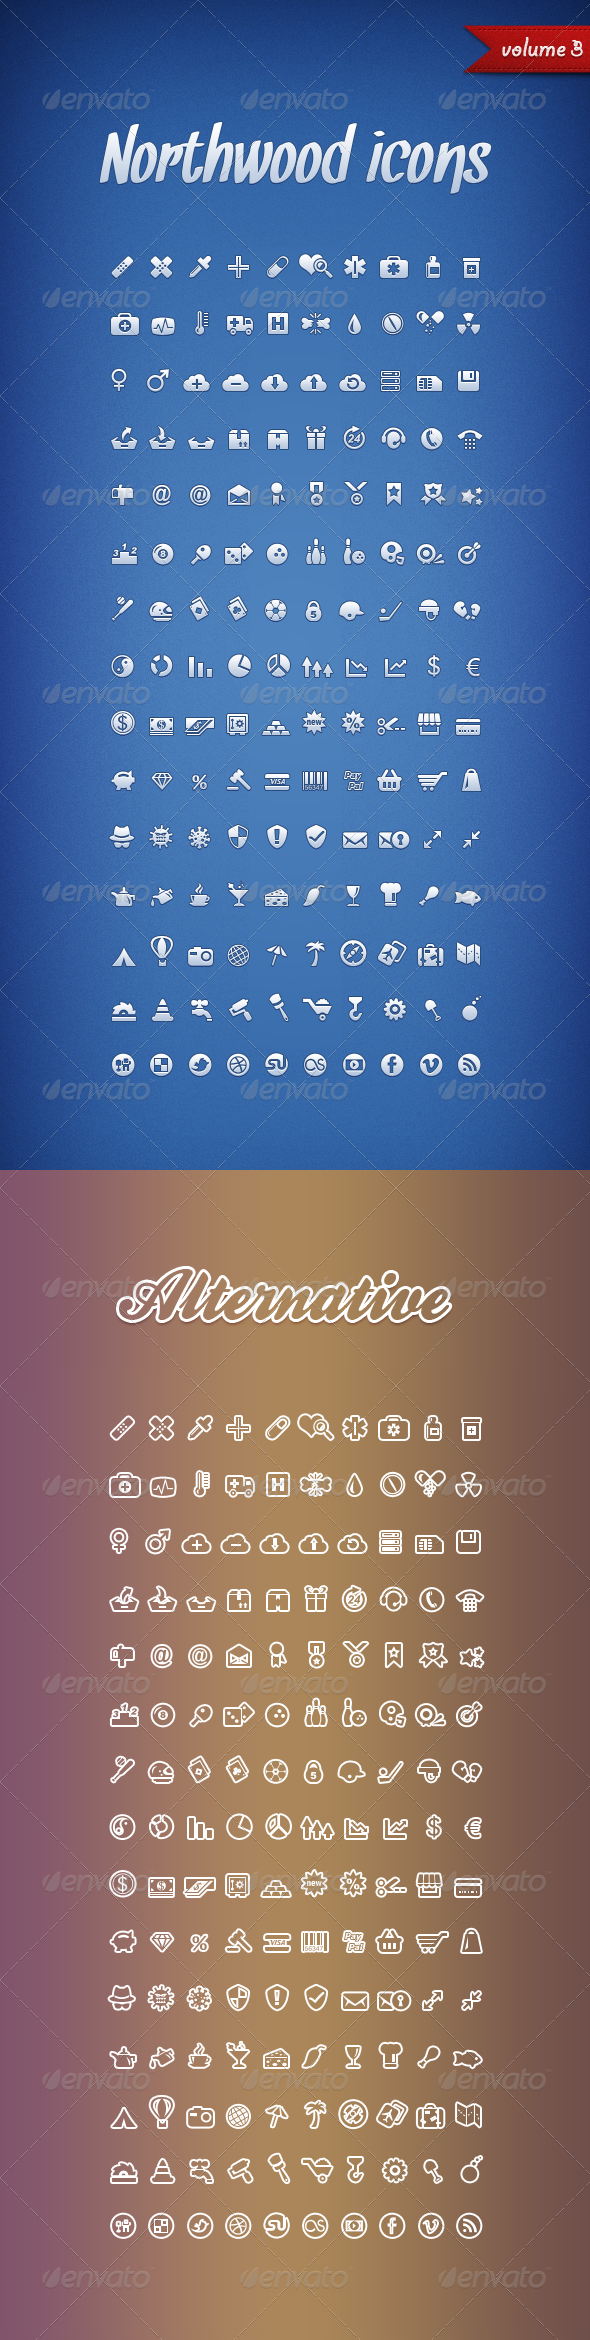 Northwood Icons Volume 3 - Web Icons